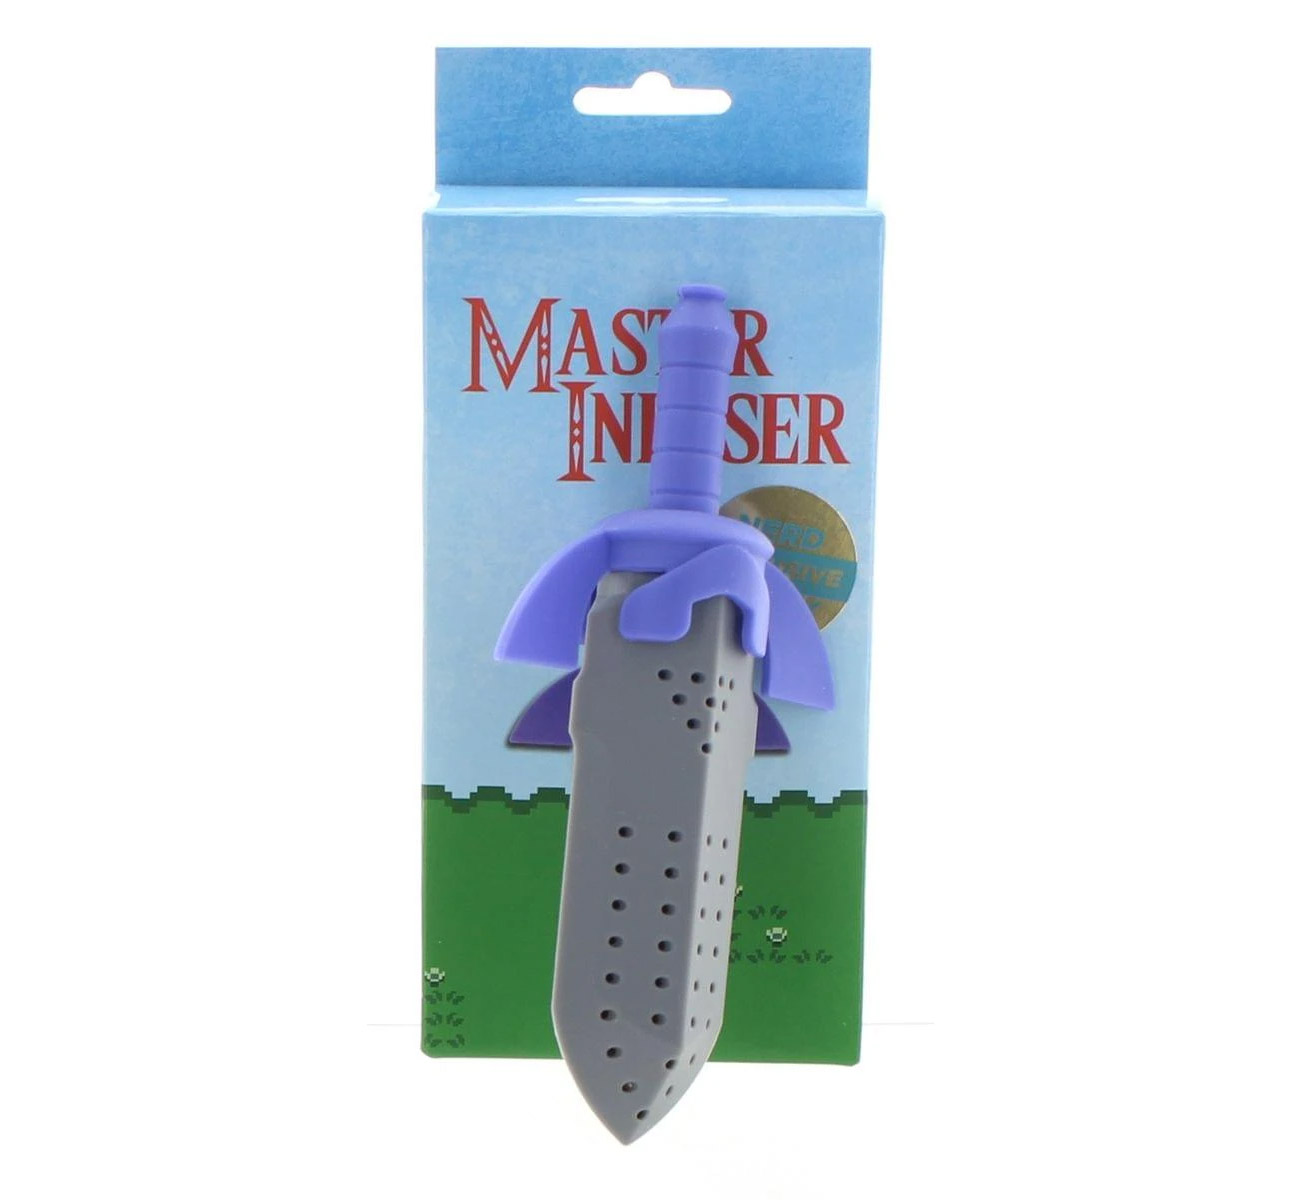 Legend of Zelda Master Sword Silicone Tea Infuser - Link's sword geeky tea infuser